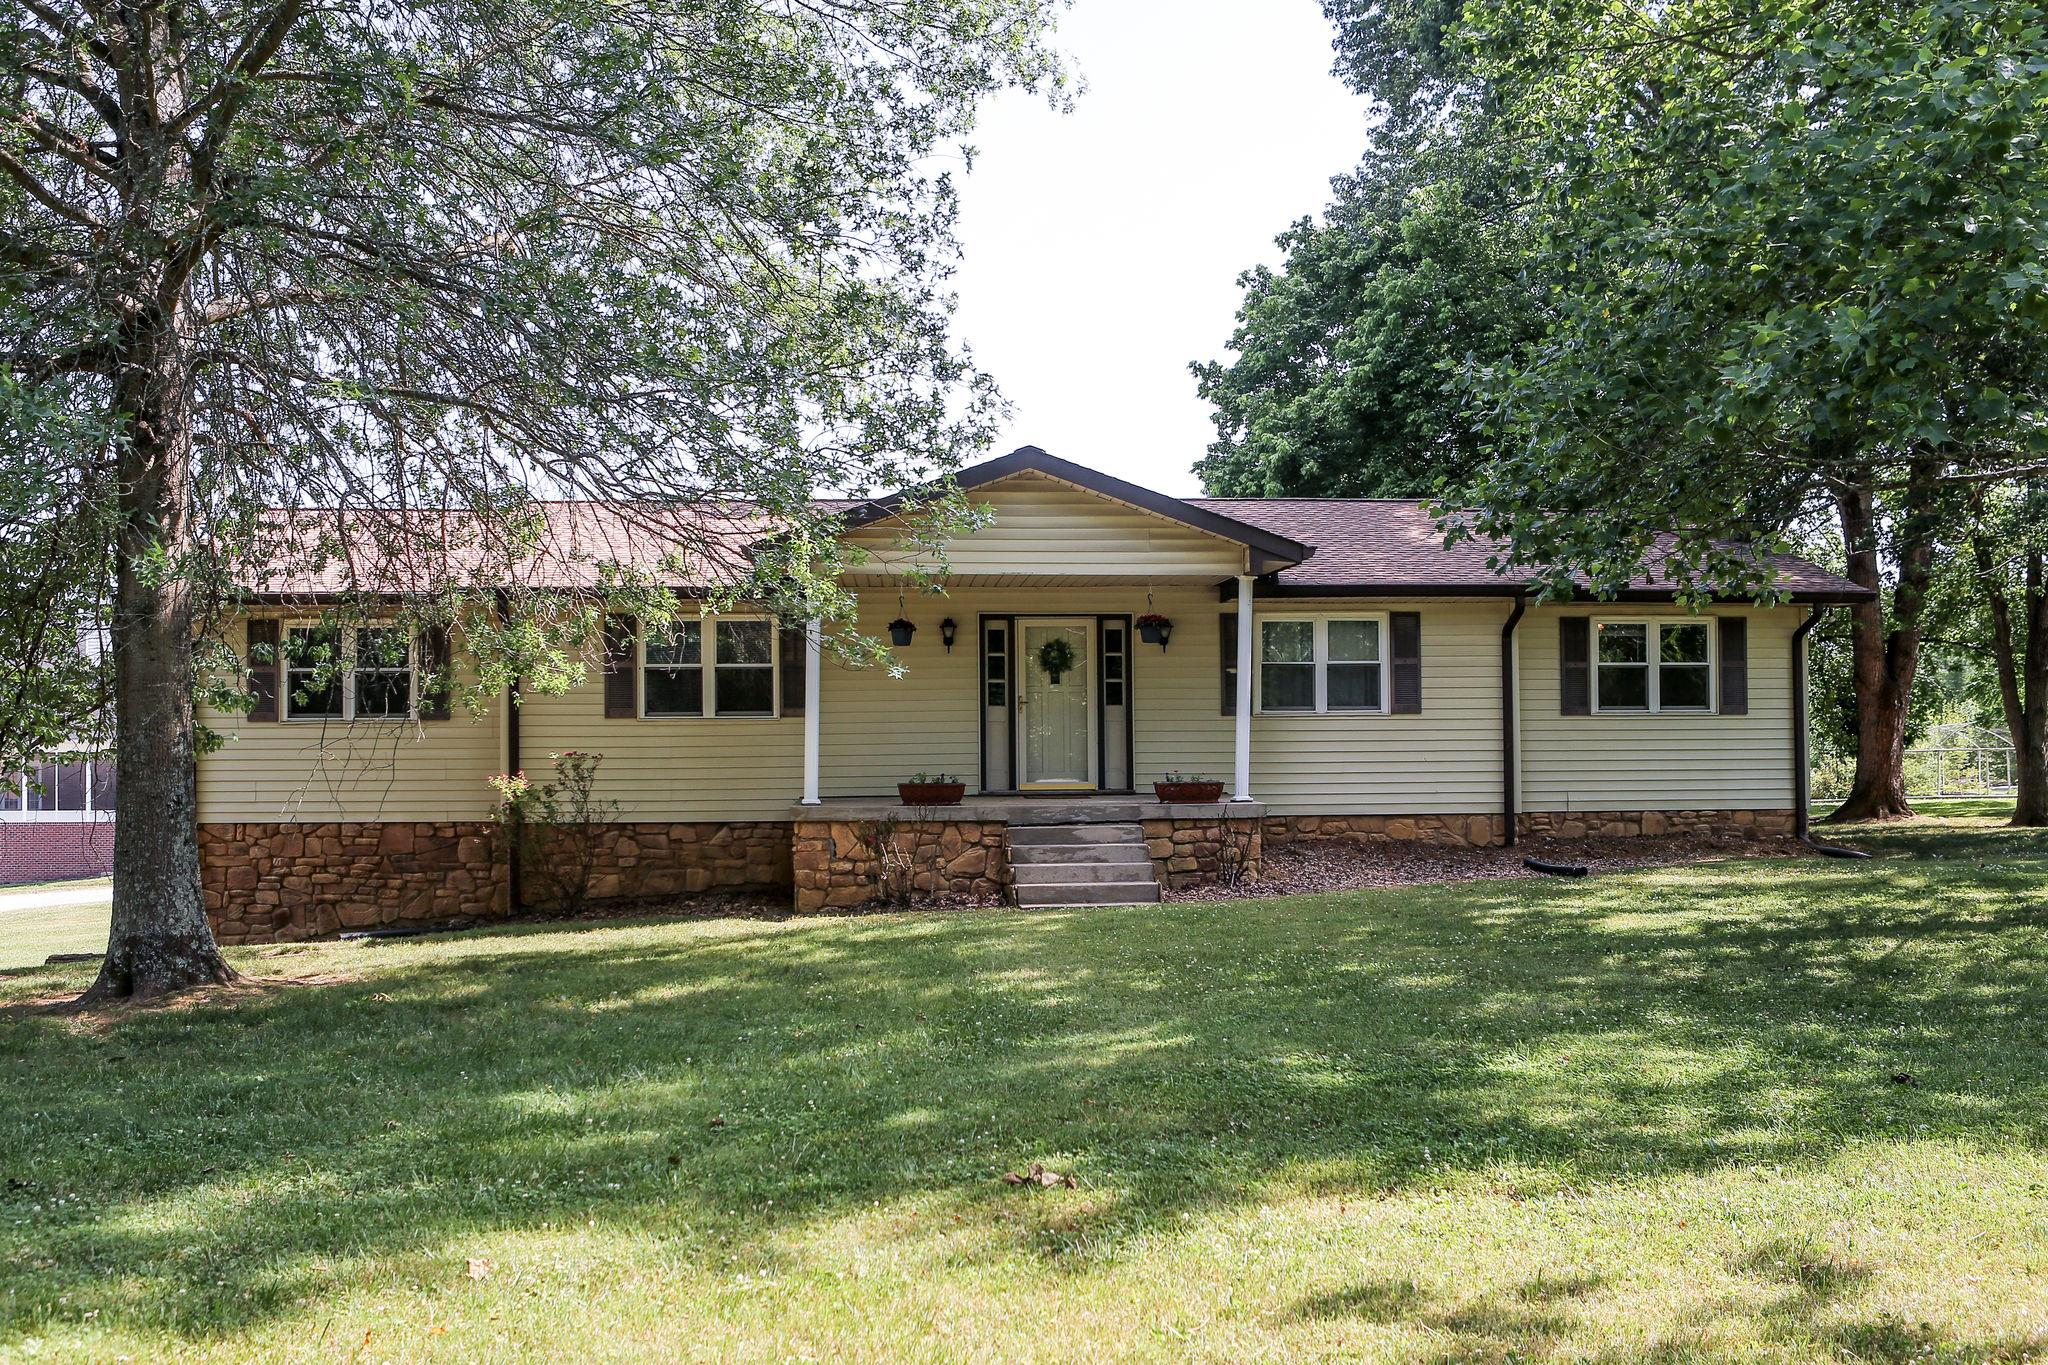 8236 Hickory Ridge Rd, Mount Juliet in Wilson County County, TN 37122 Home for Sale